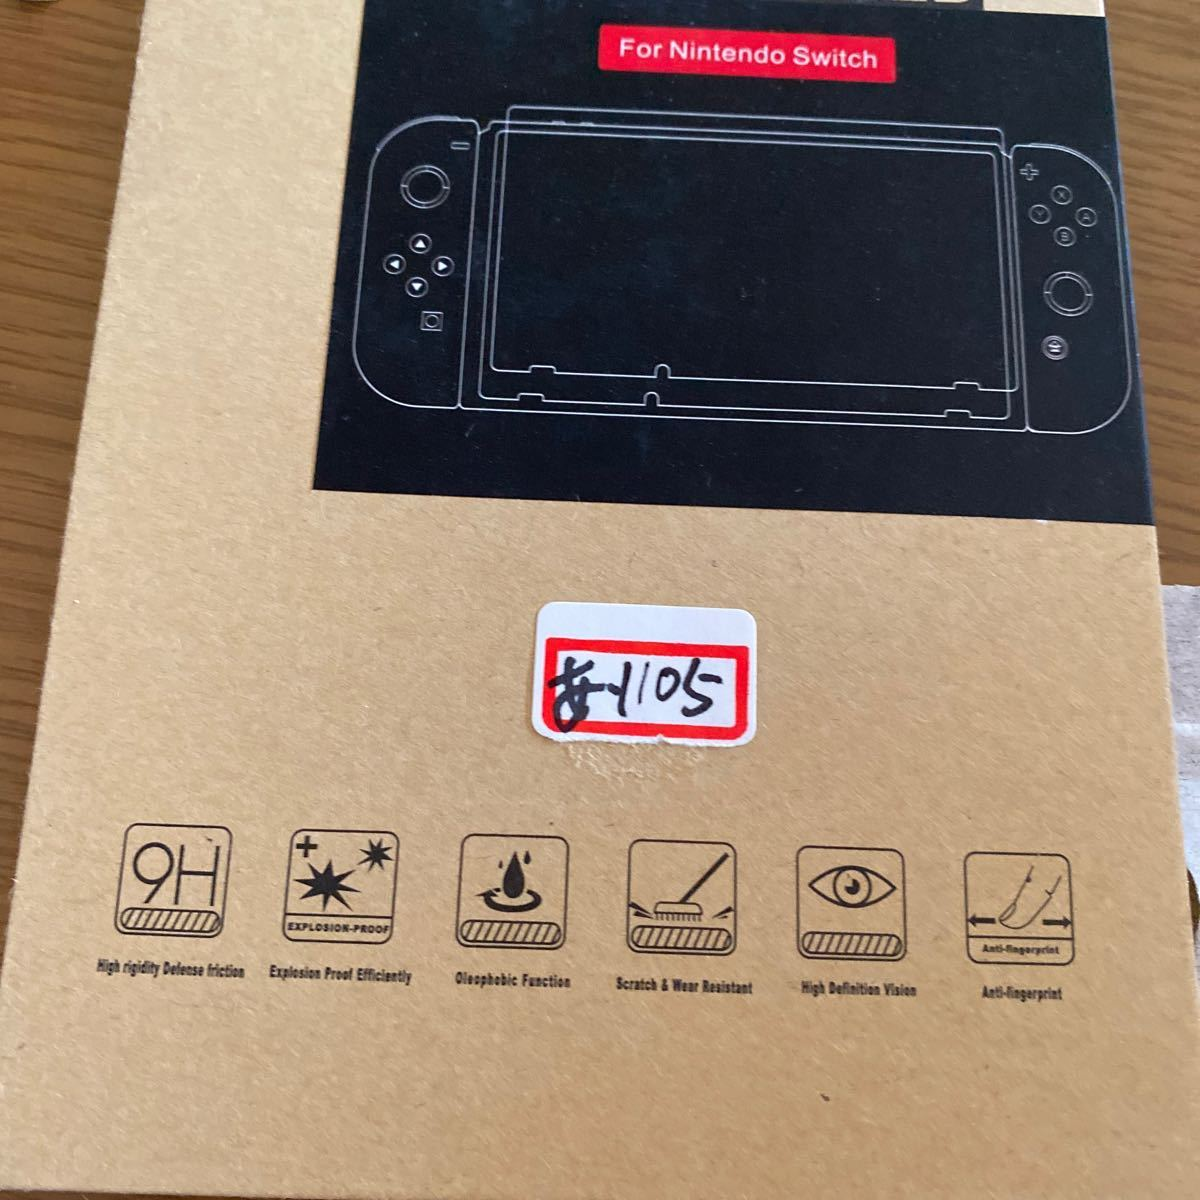 Switch用 液晶保護フィルム自動吸着貼ガラスフィルム り付け簡単 気泡ゼロ日本製旭硝子素材